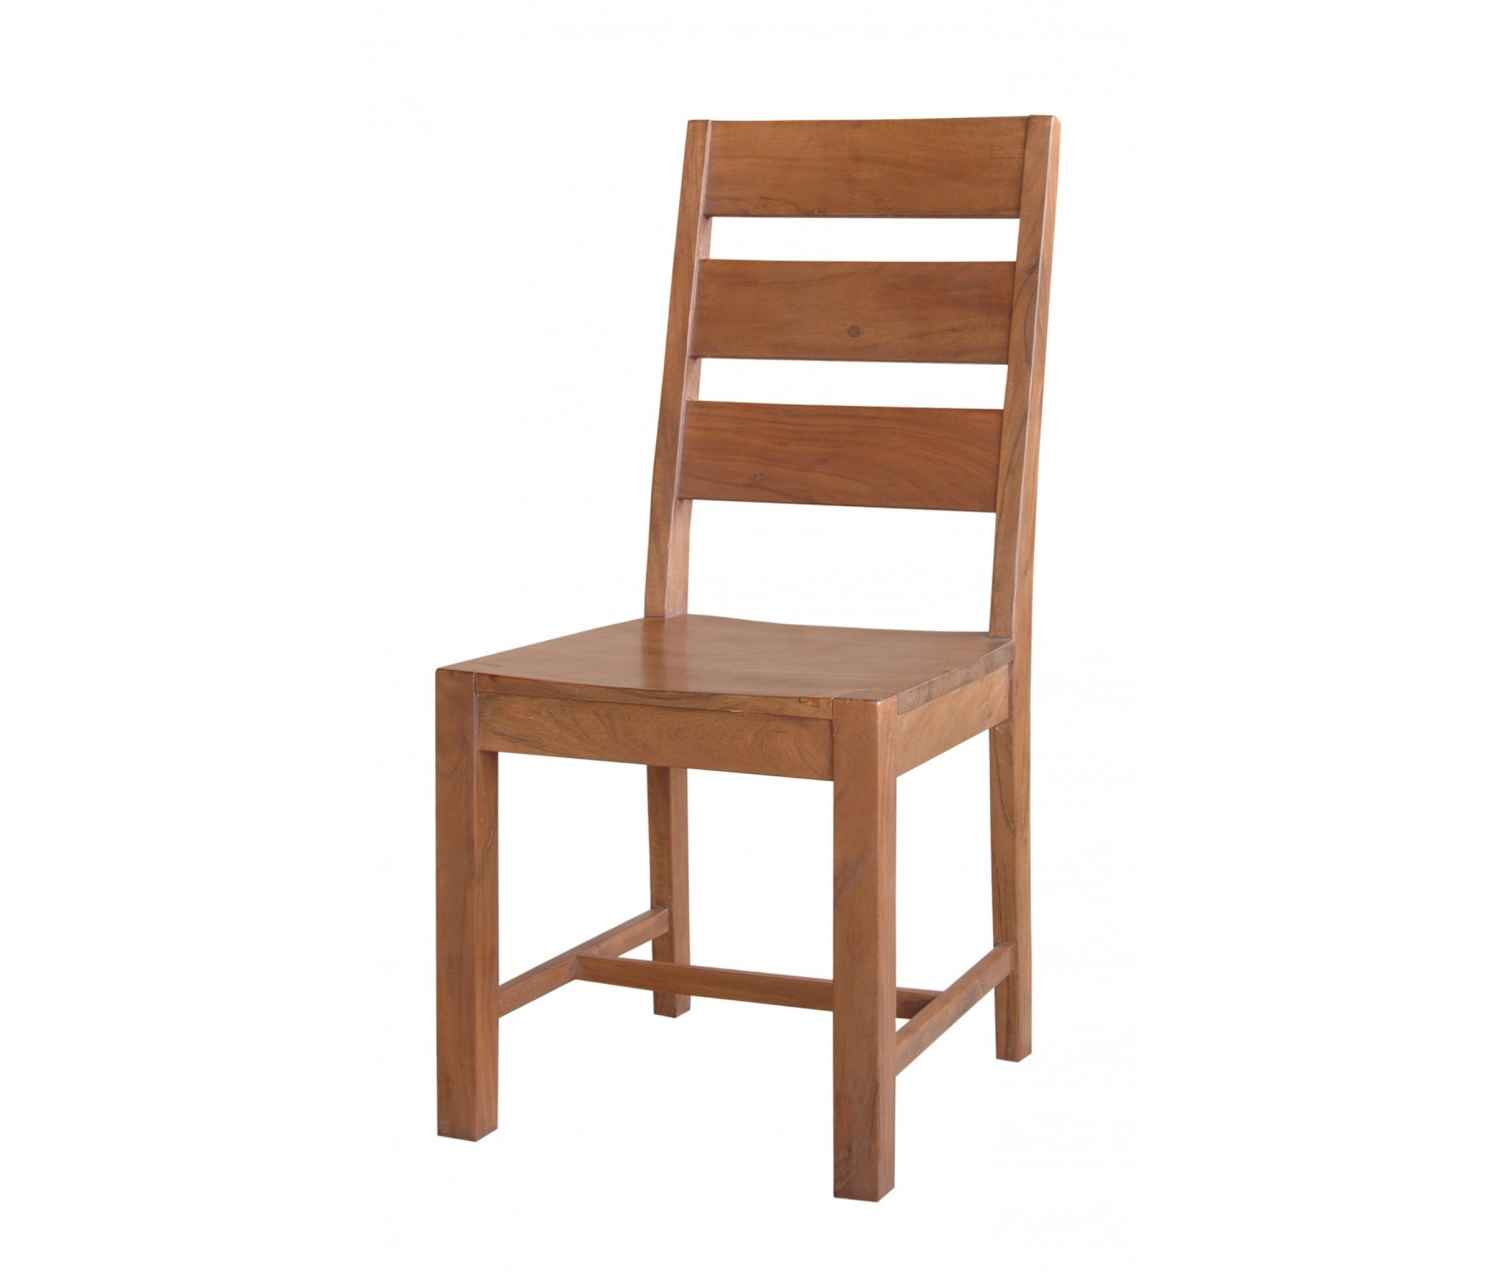 Wooden Chairs Cheap Home Chairs Furniture Ideas